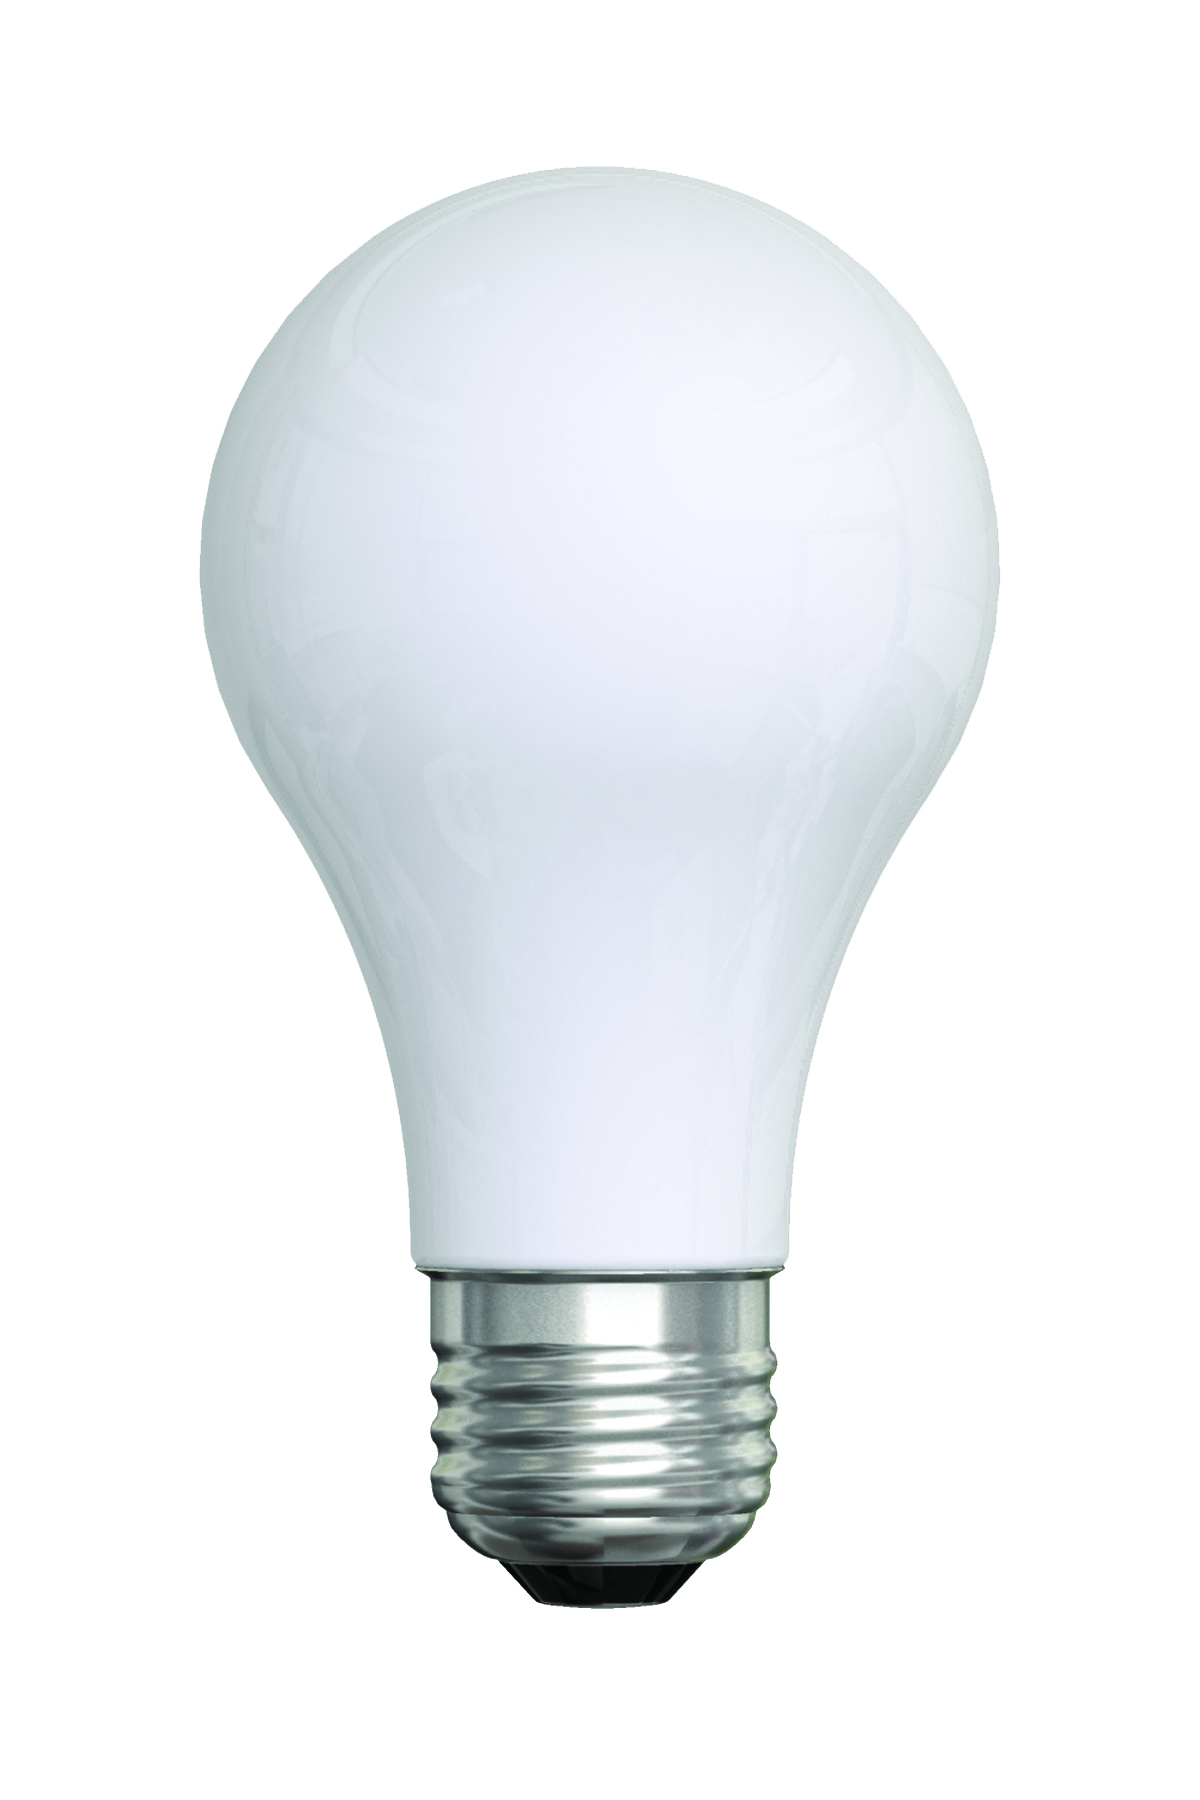 Ge s energy efficient soft white halogen light bulb offers big savings ge lighting north A light bulb